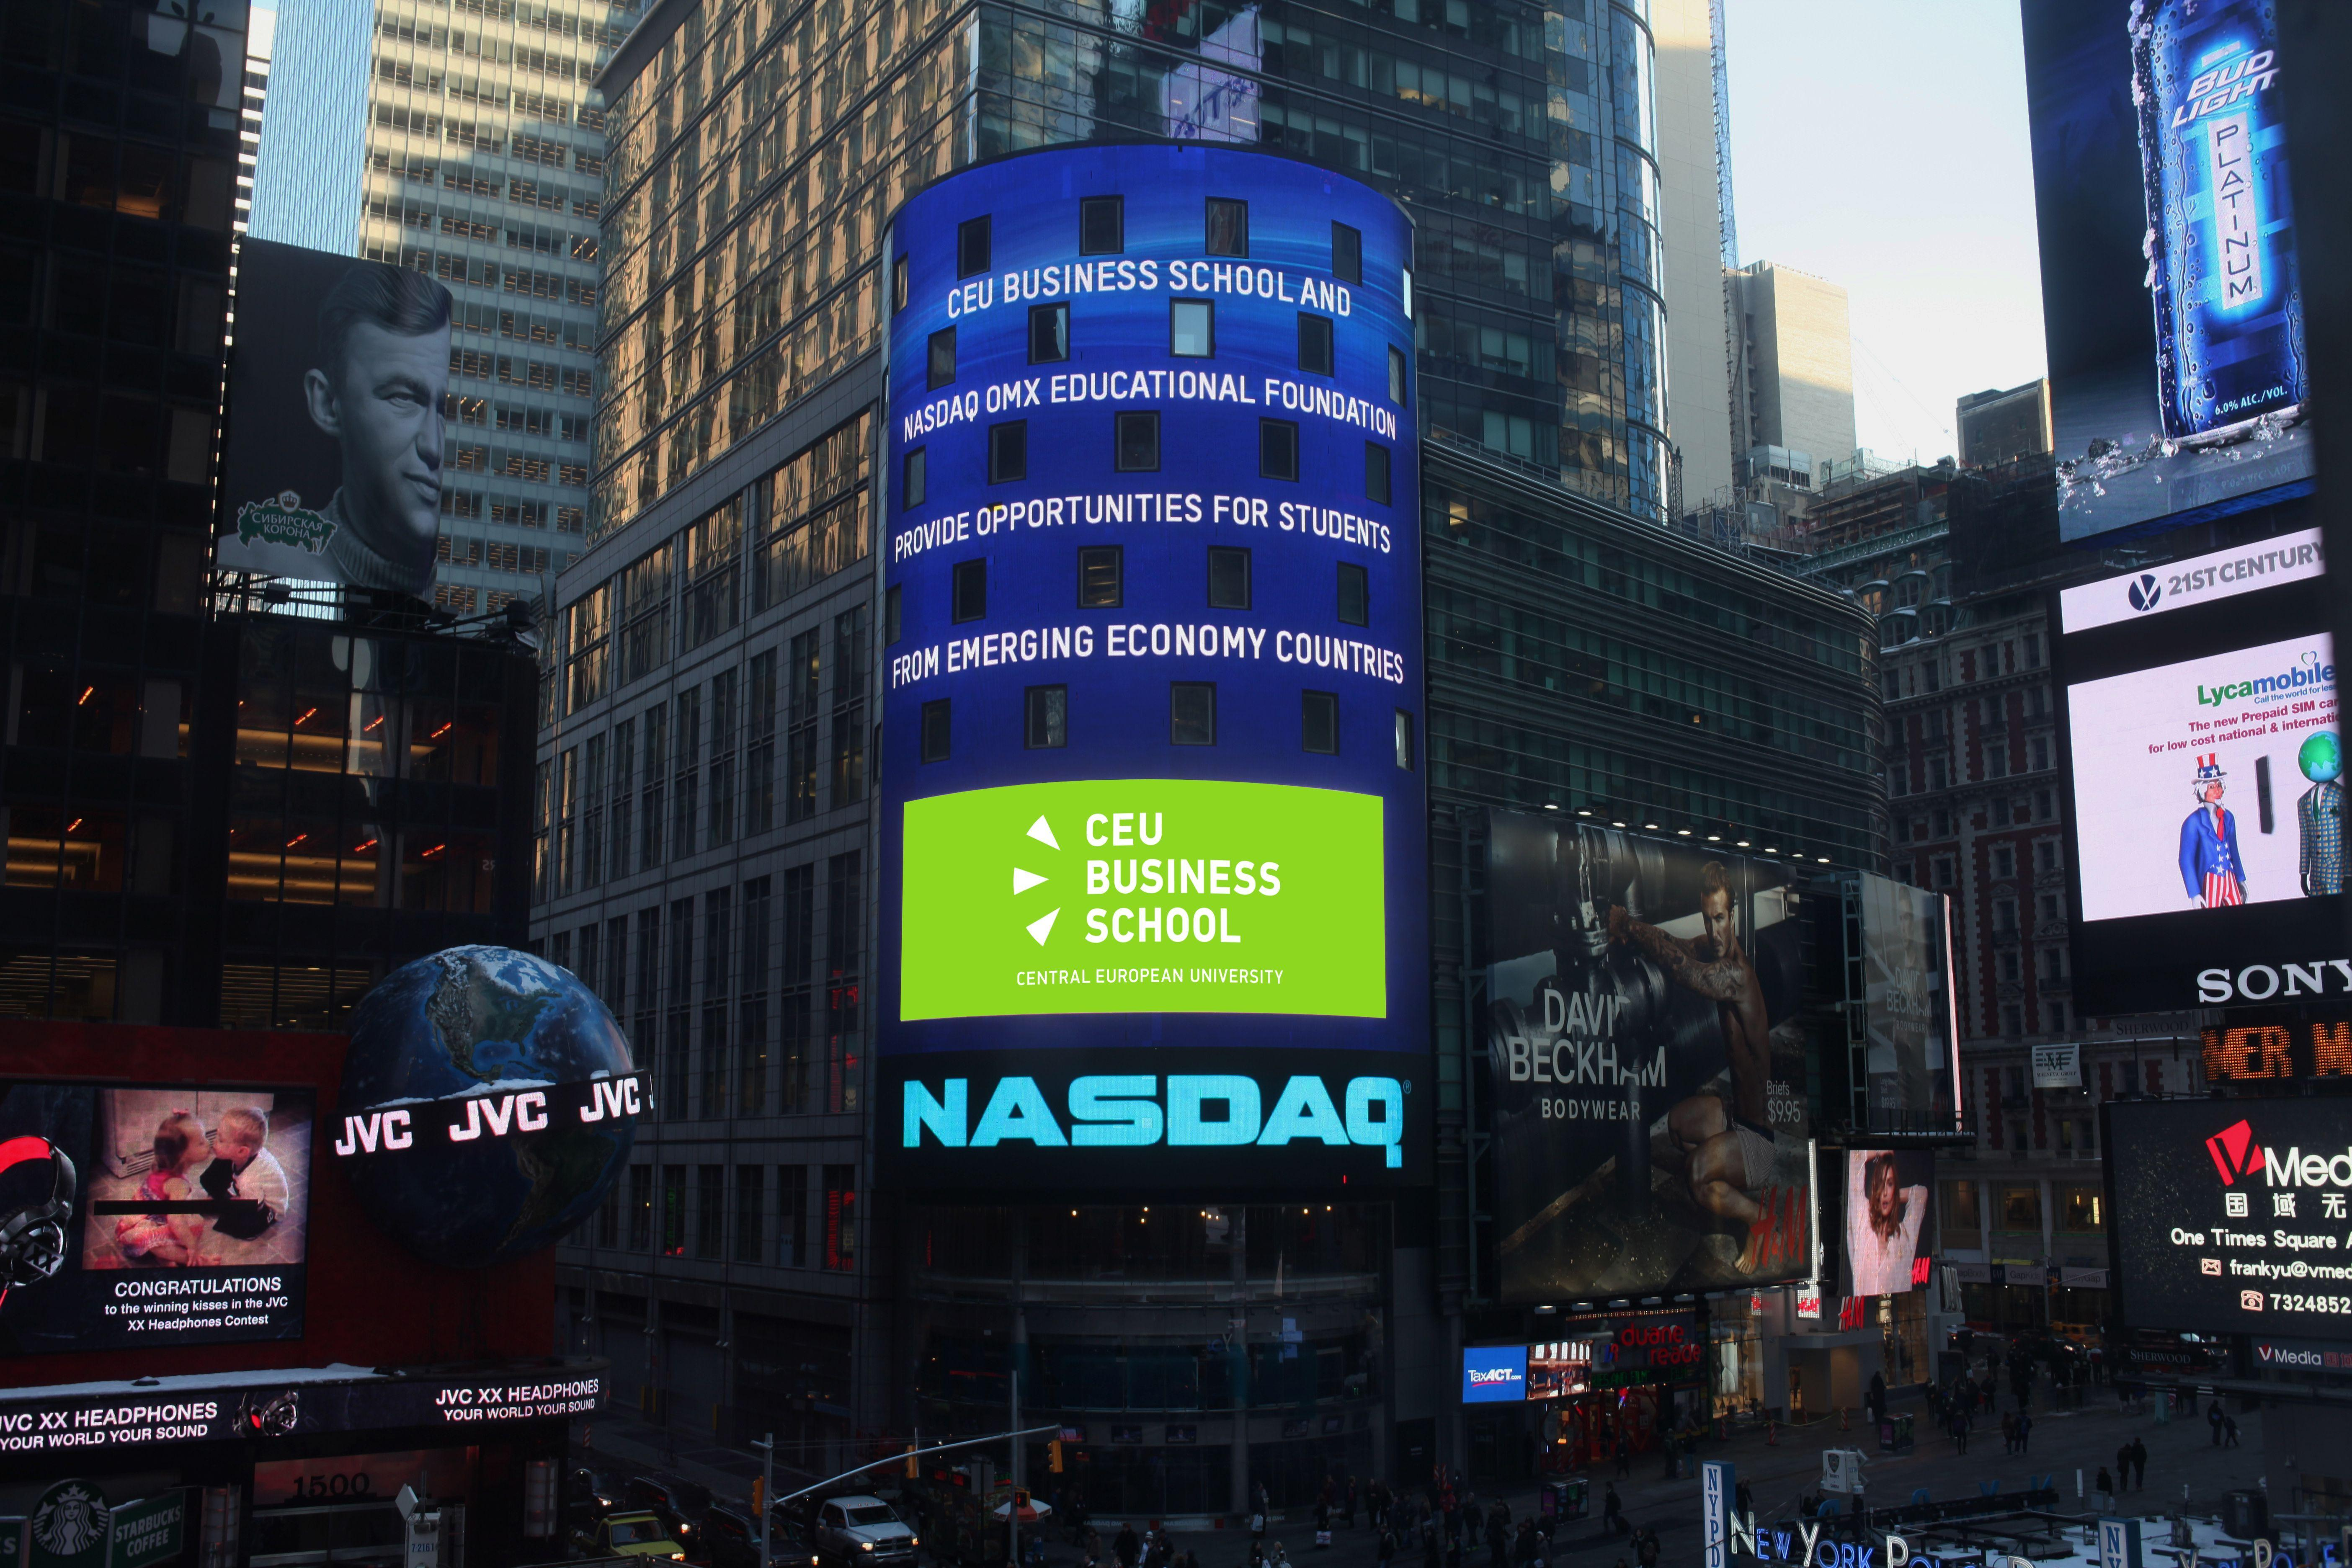 NASDAQ OMX Educational Foundation Awards Grant To CEU Business School Budapest